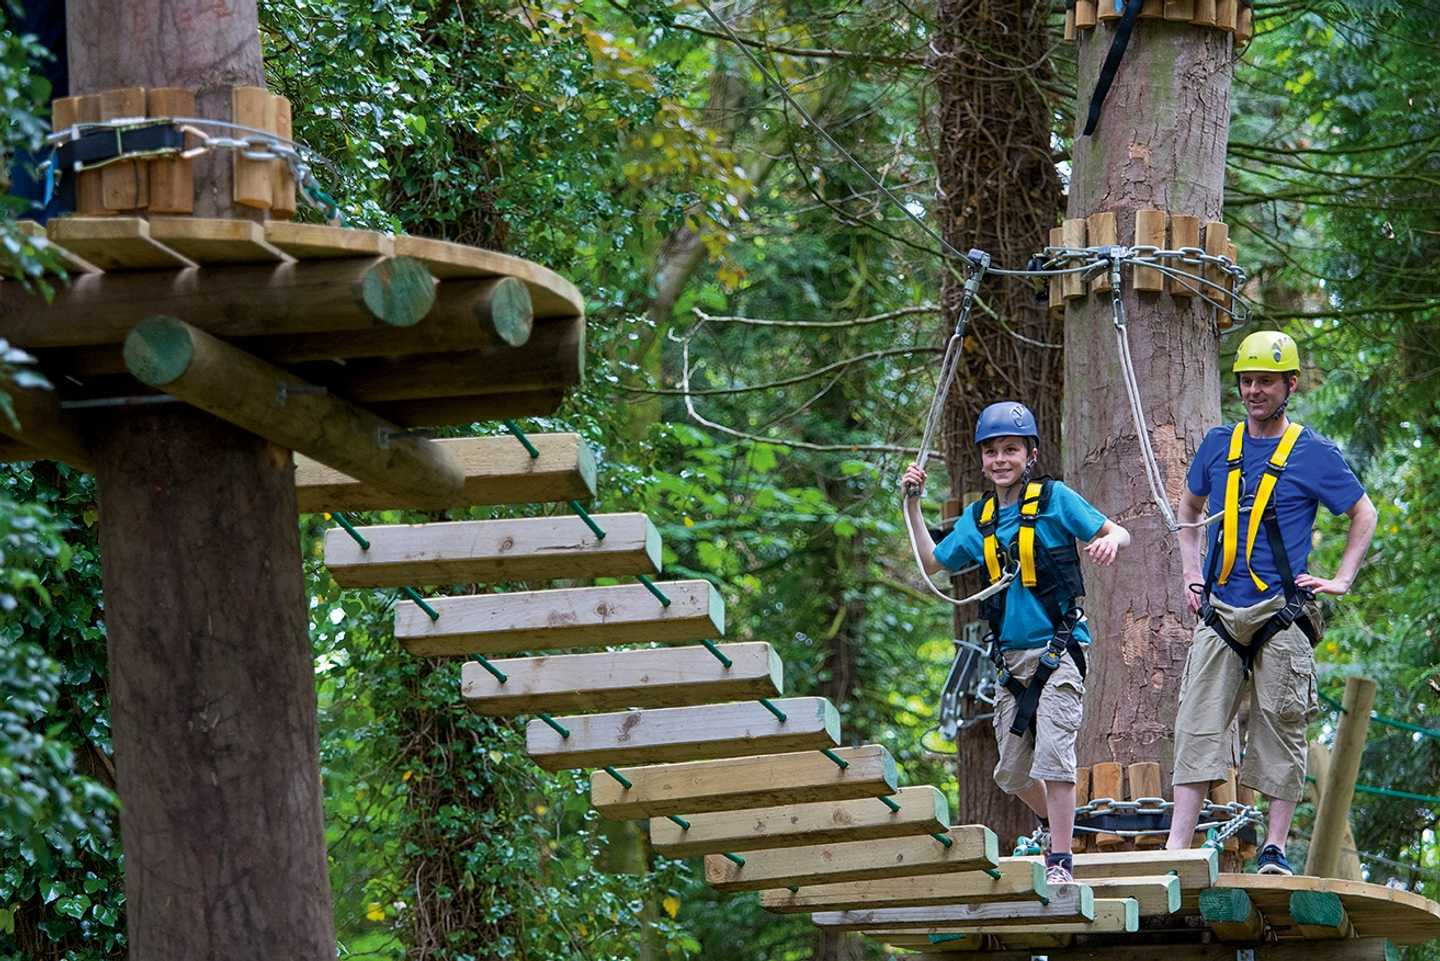 Guests crossing the rope bridge on the aerial adventure course